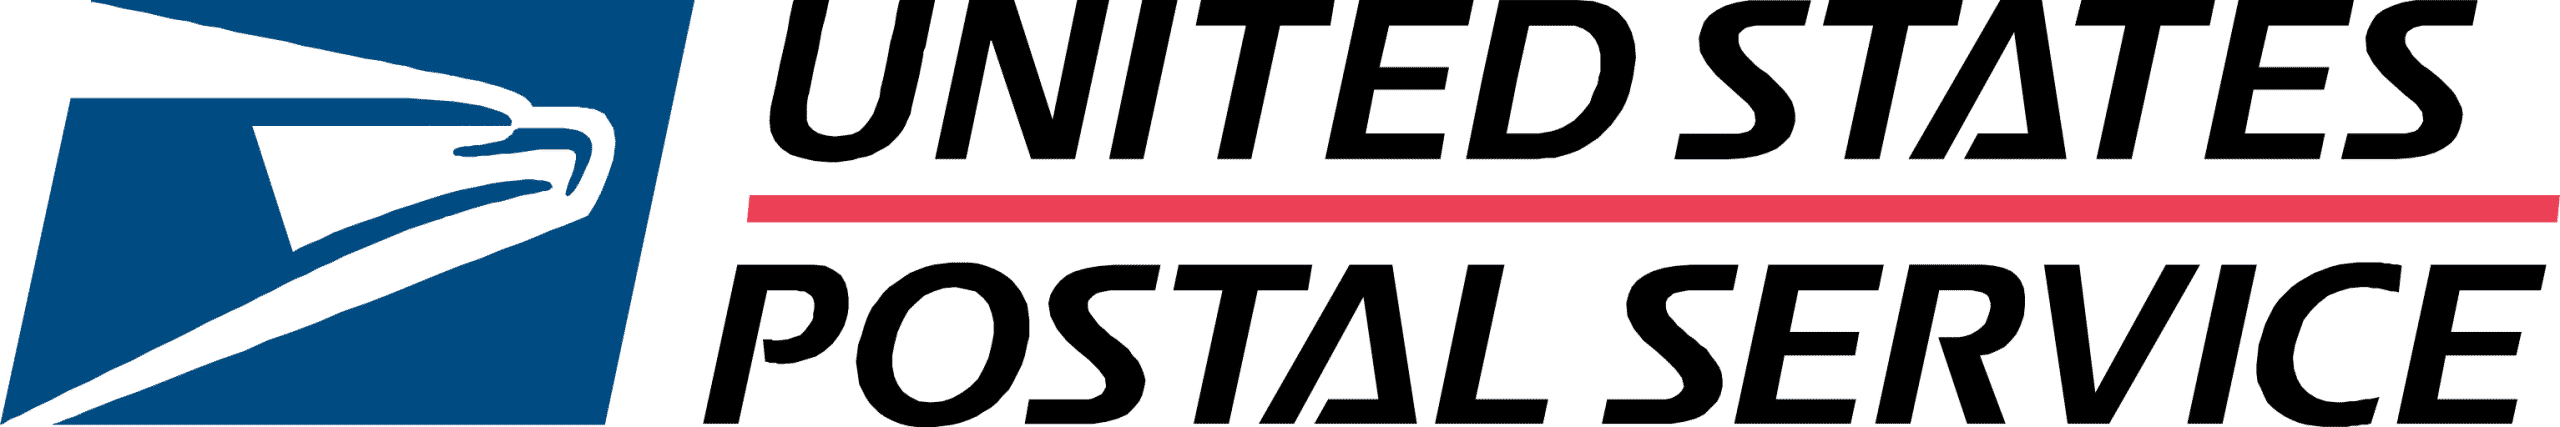 United Stated Postal Service